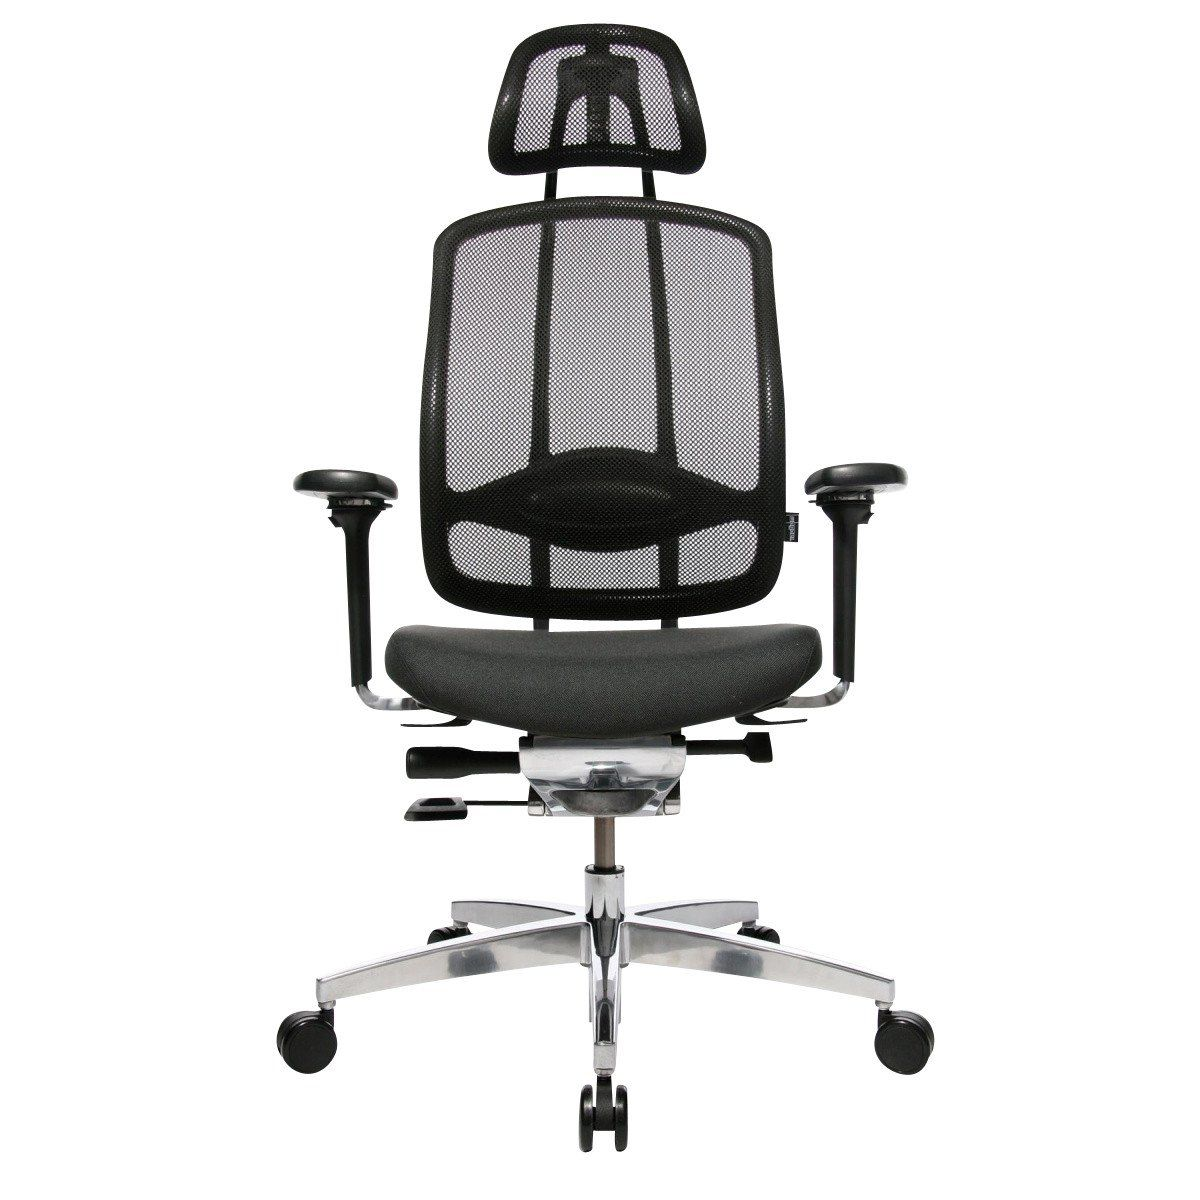 Wagner Alumedic 10 Office Chair Breathable Mesh Cover Black Fabric